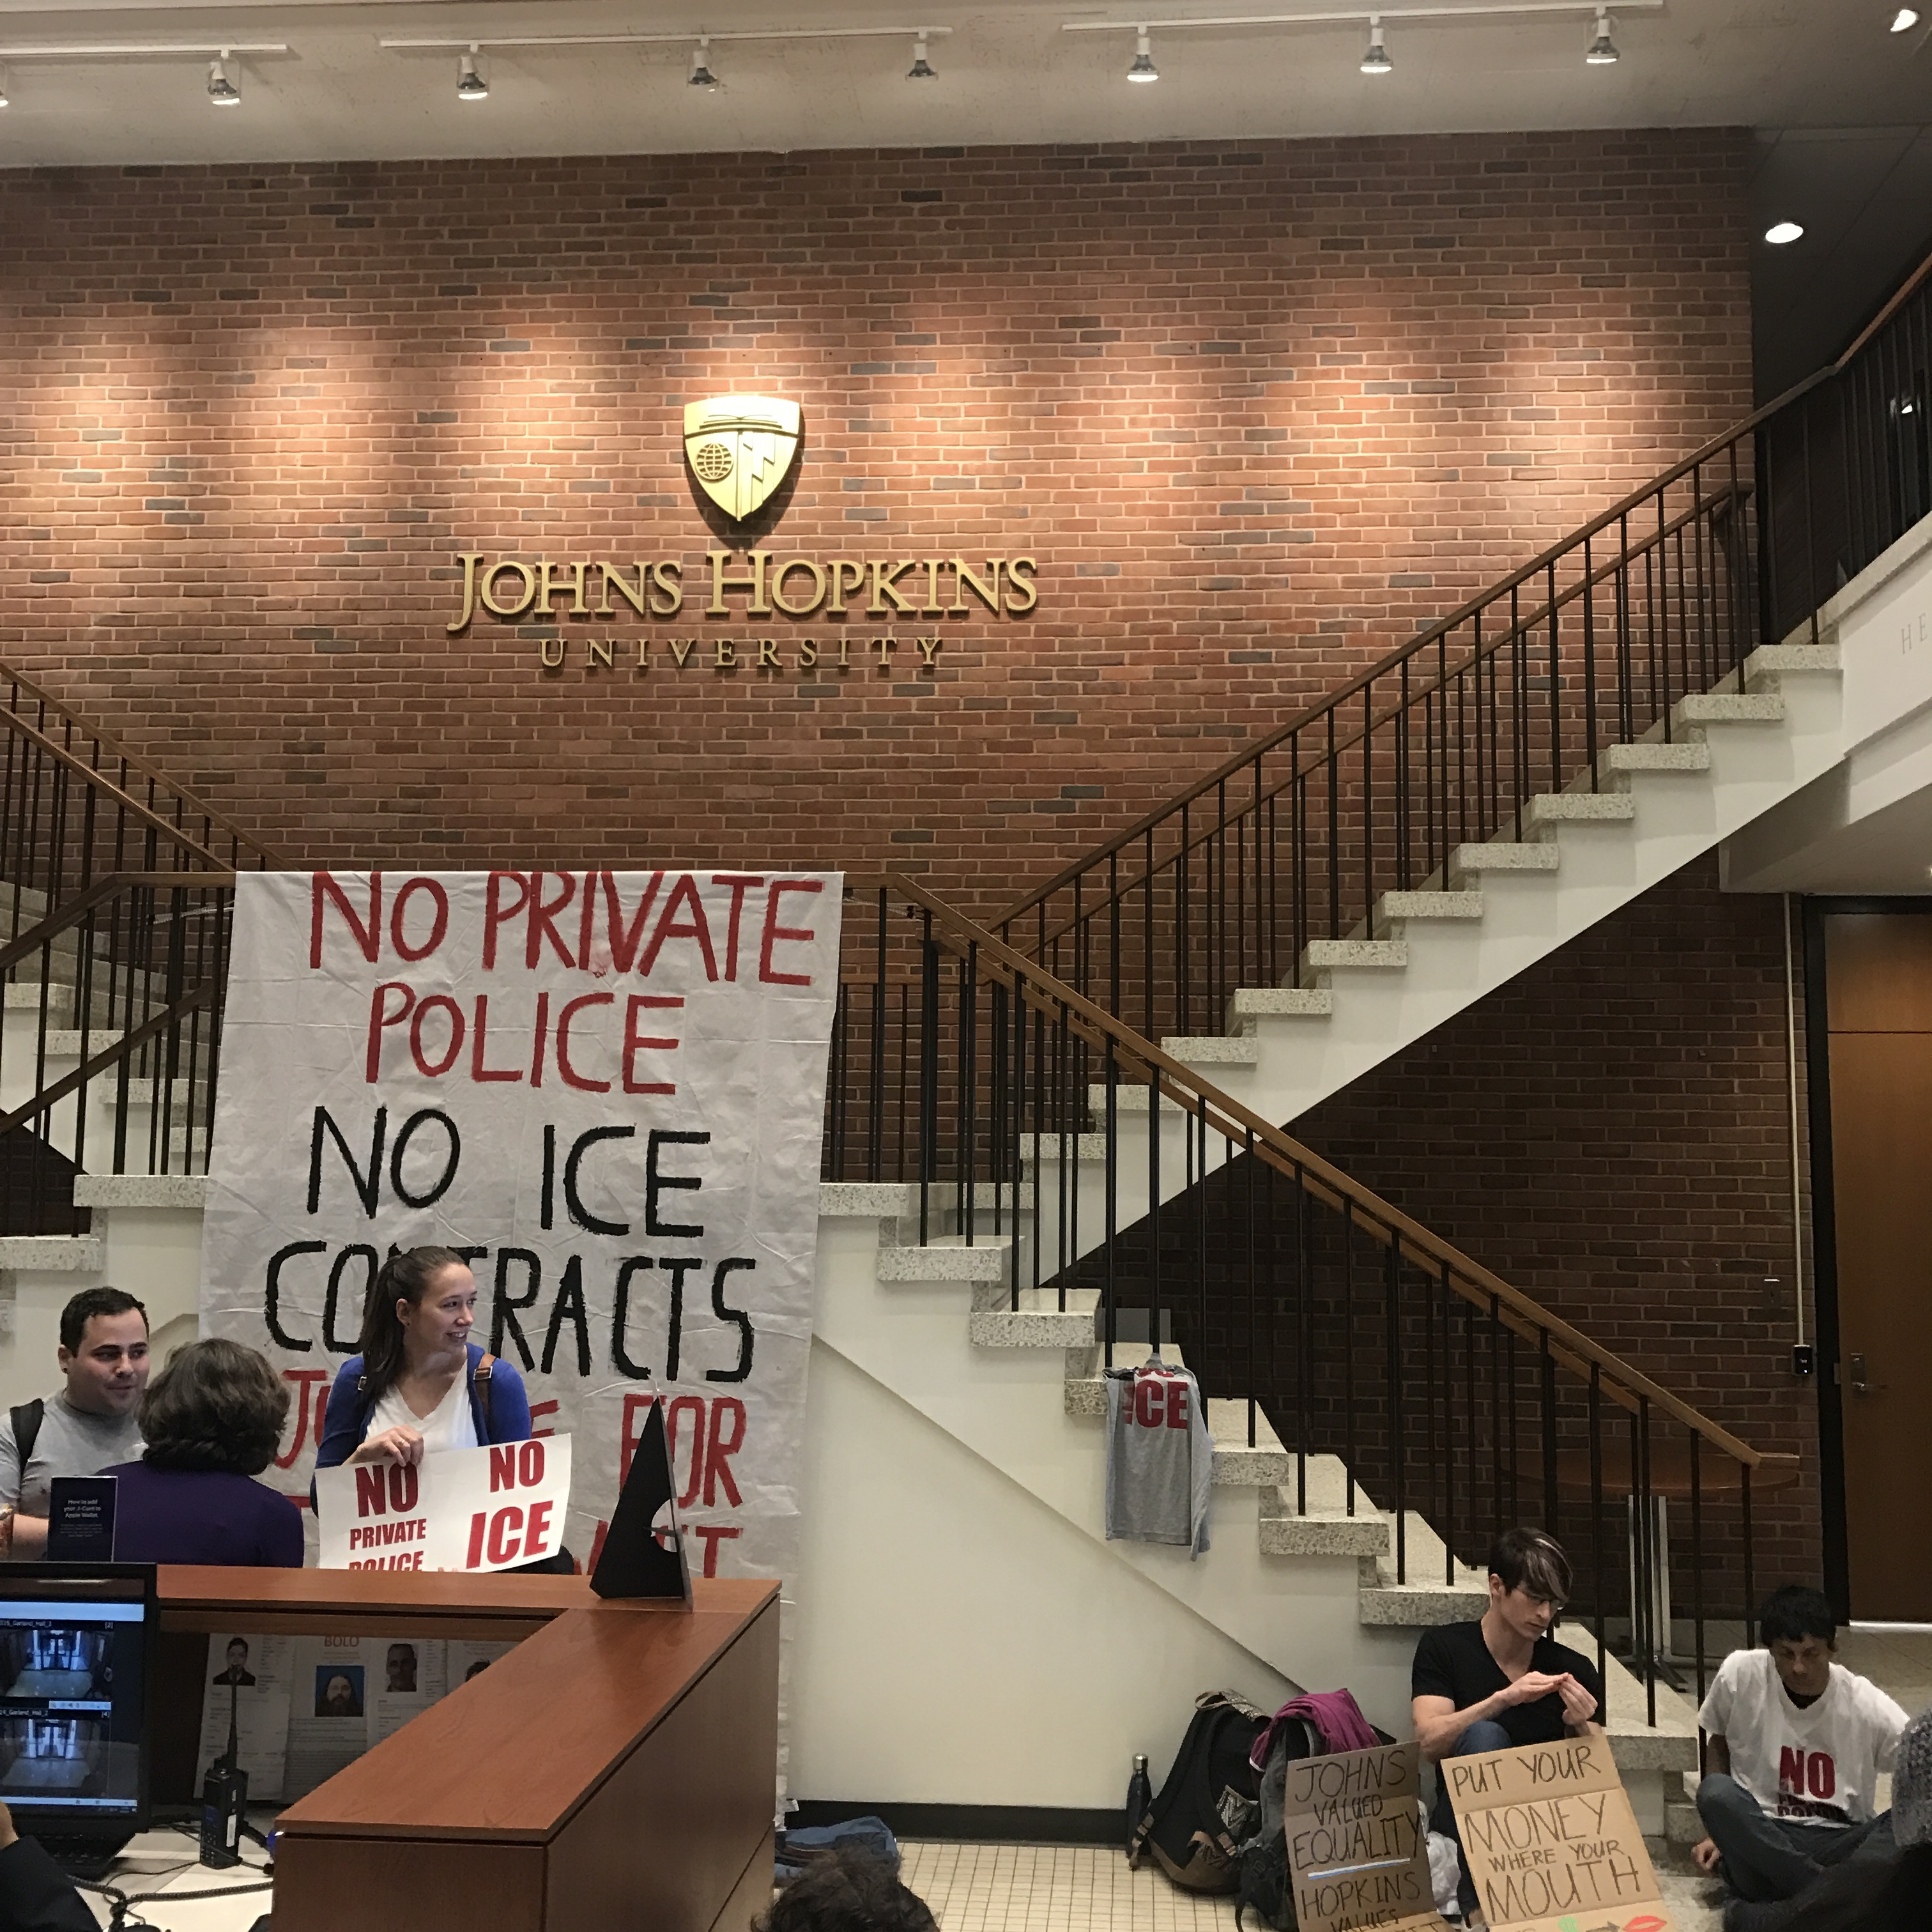 Busty ally big ass Keep On Pushing Student Sit In Opposes Militarization Of Johns Hopkins